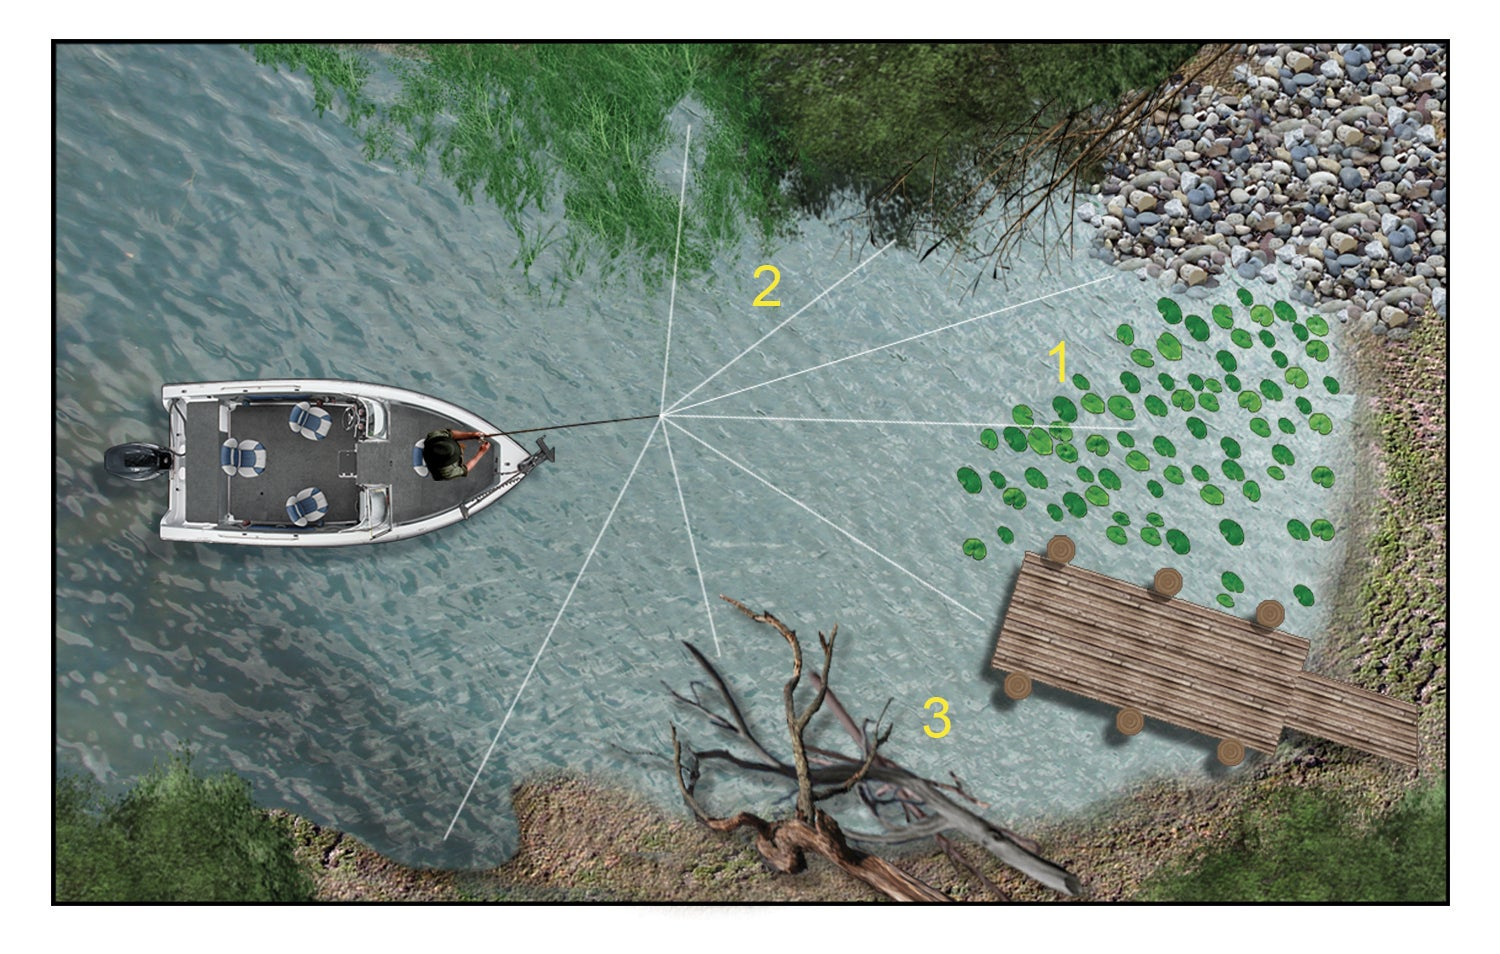 Summertime Bass Fishing: How to Catch a Limit in Any Body of Water